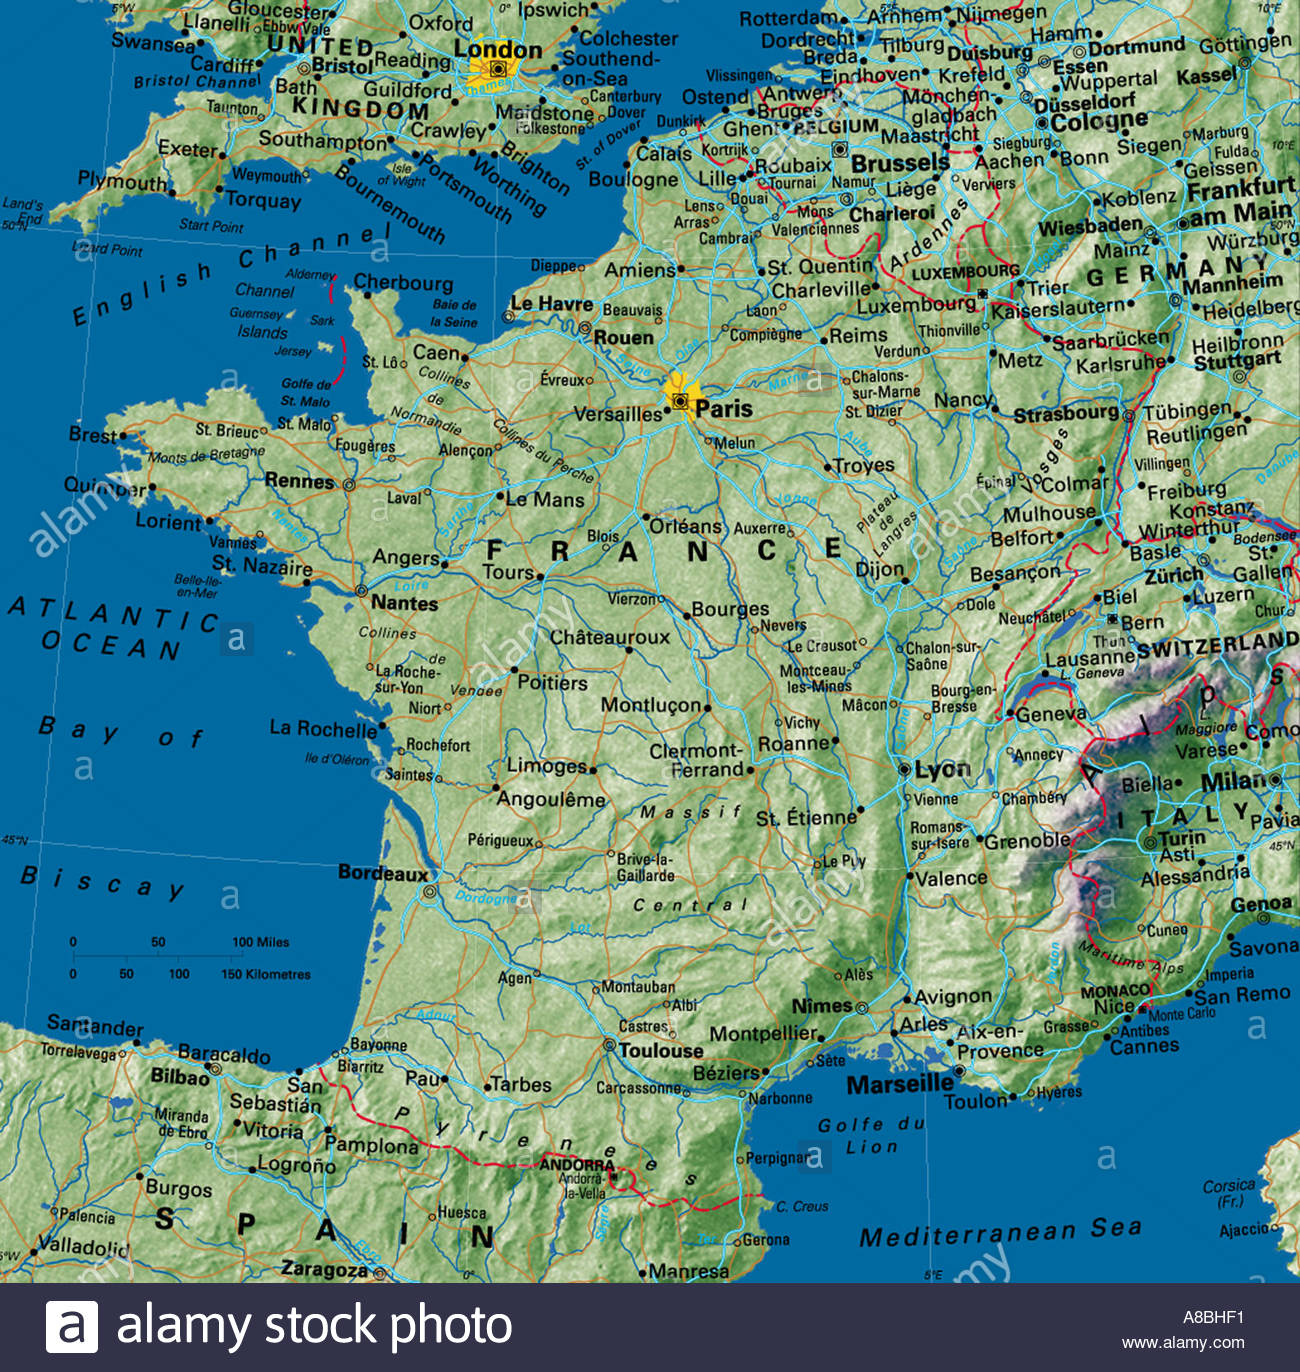 Map Of Europe France.Map Maps Europe France Stock Photo 3933680 Alamy